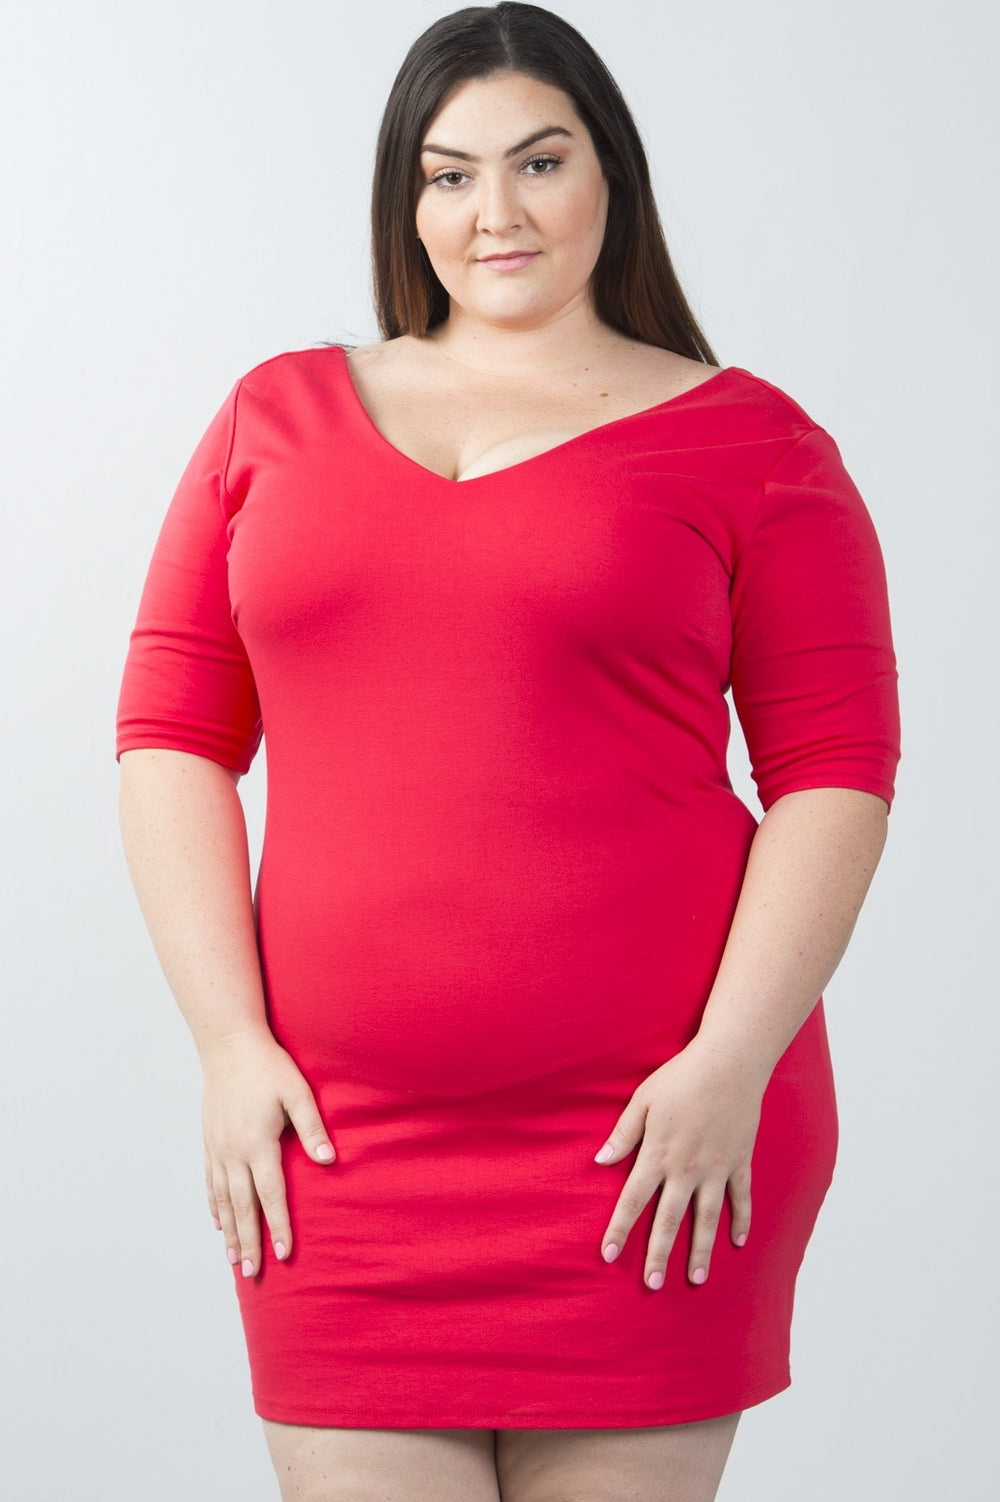 Plus Size Back Lace Mini Dress With Half Arm Sleeve - Red